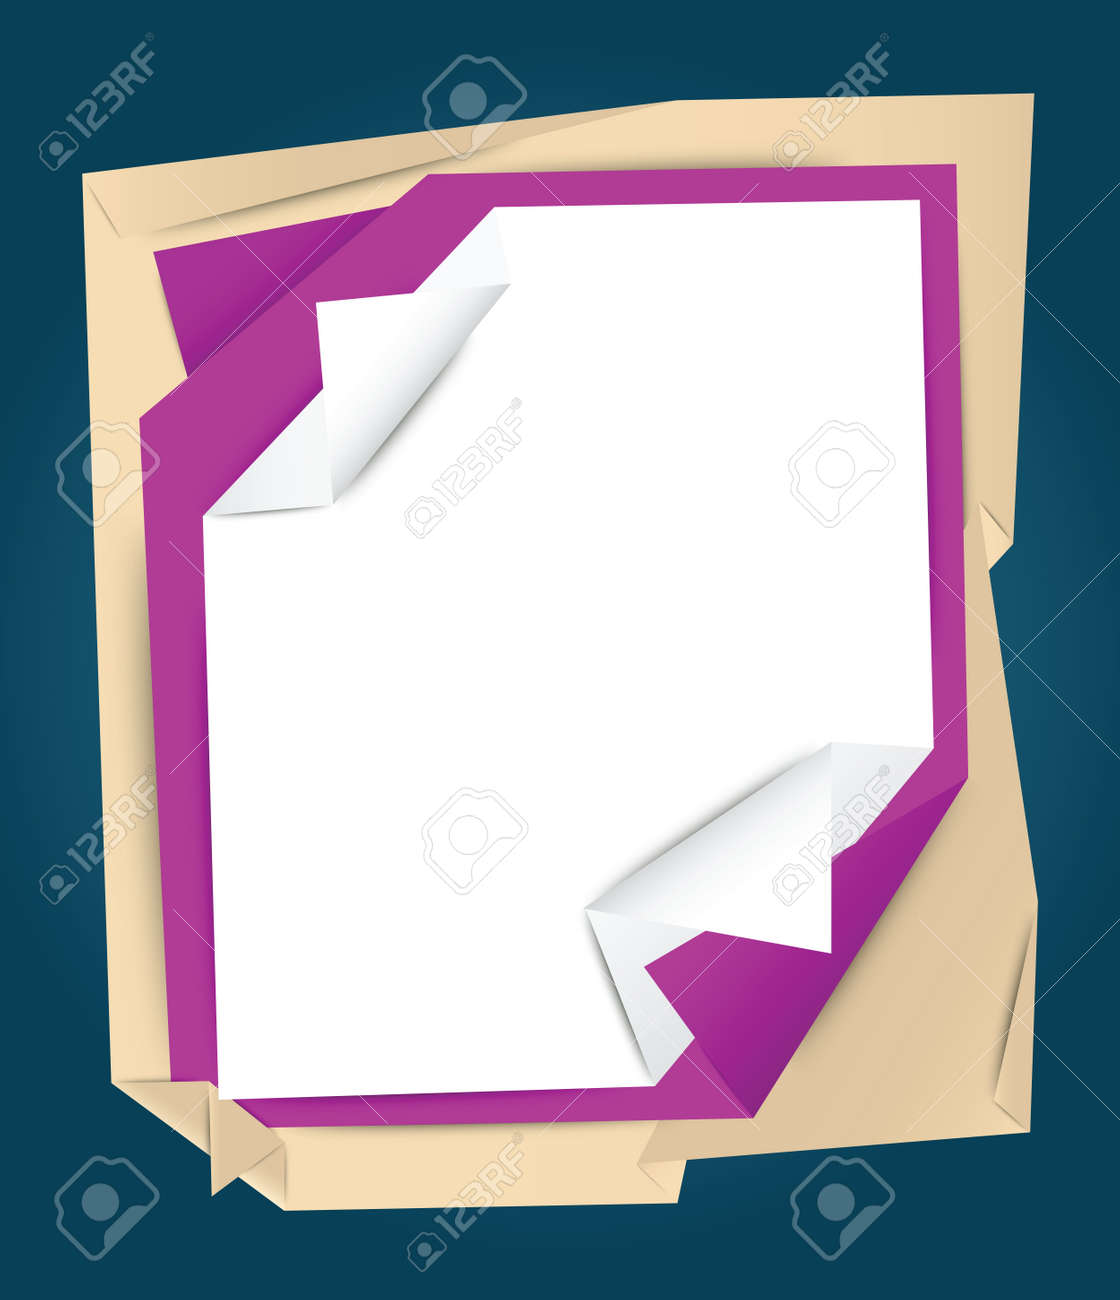 Stack of papers background - 26552035